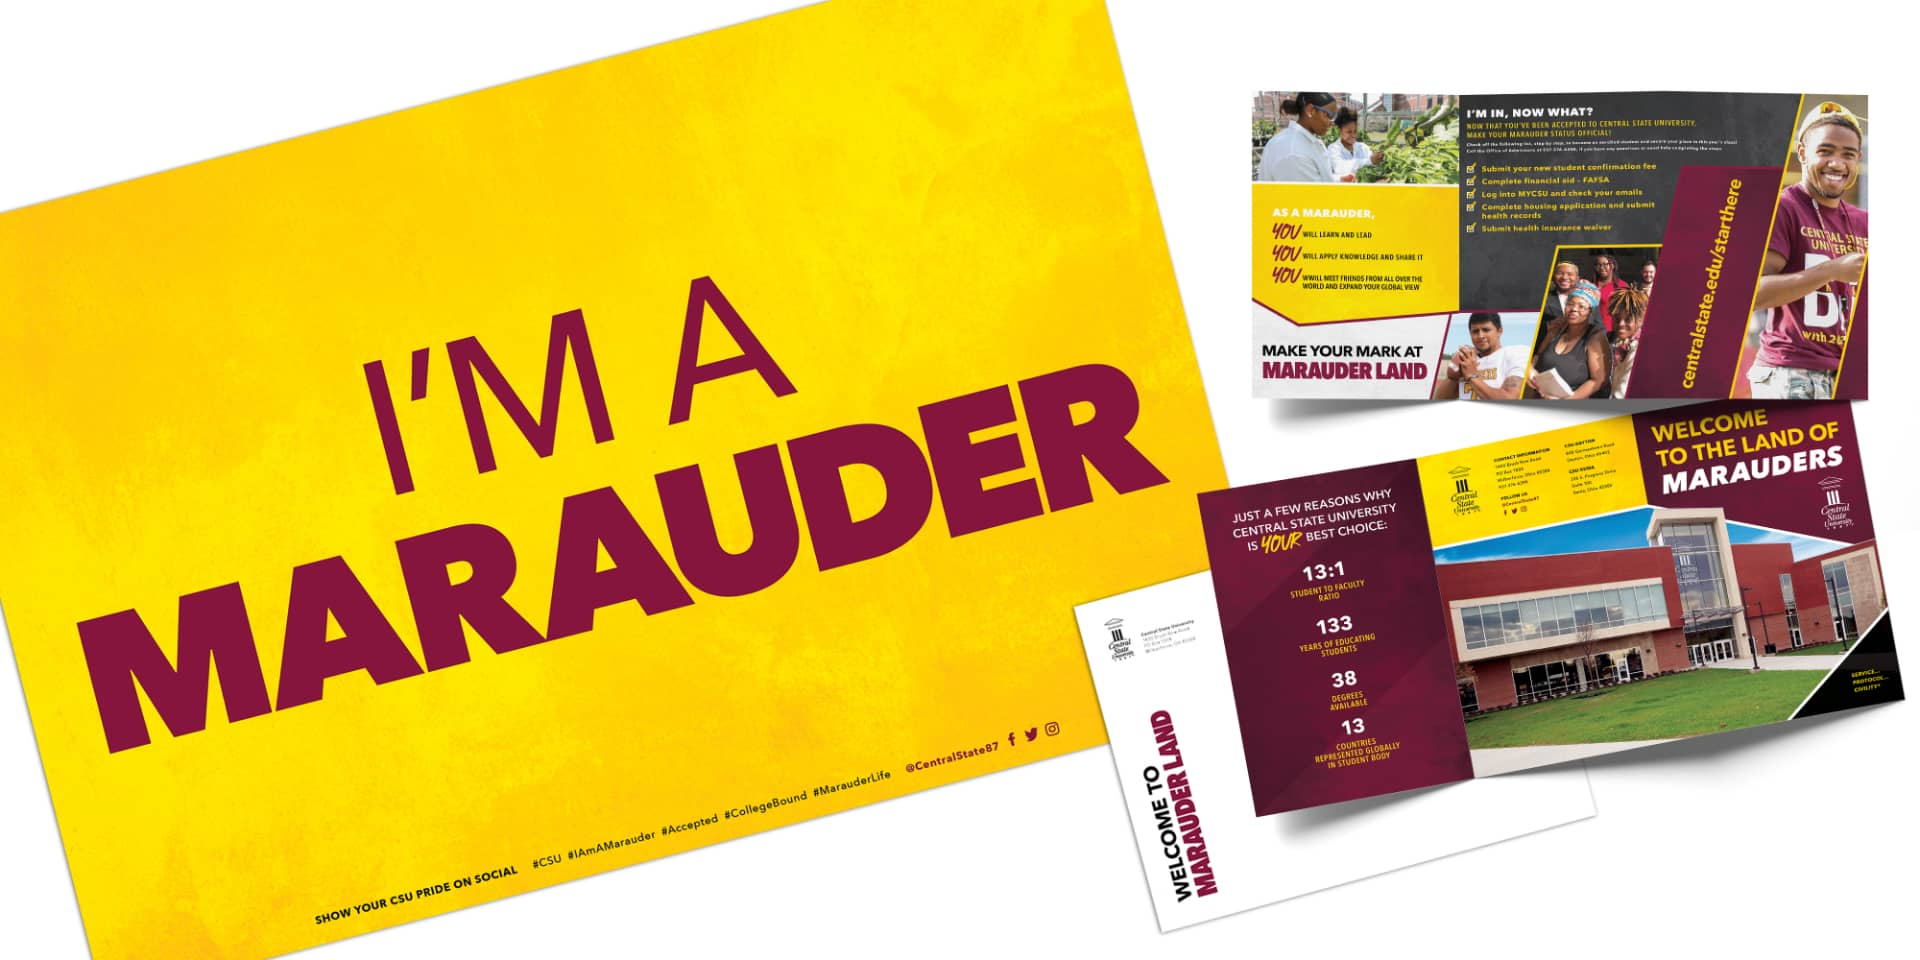 Central State University marketing materials